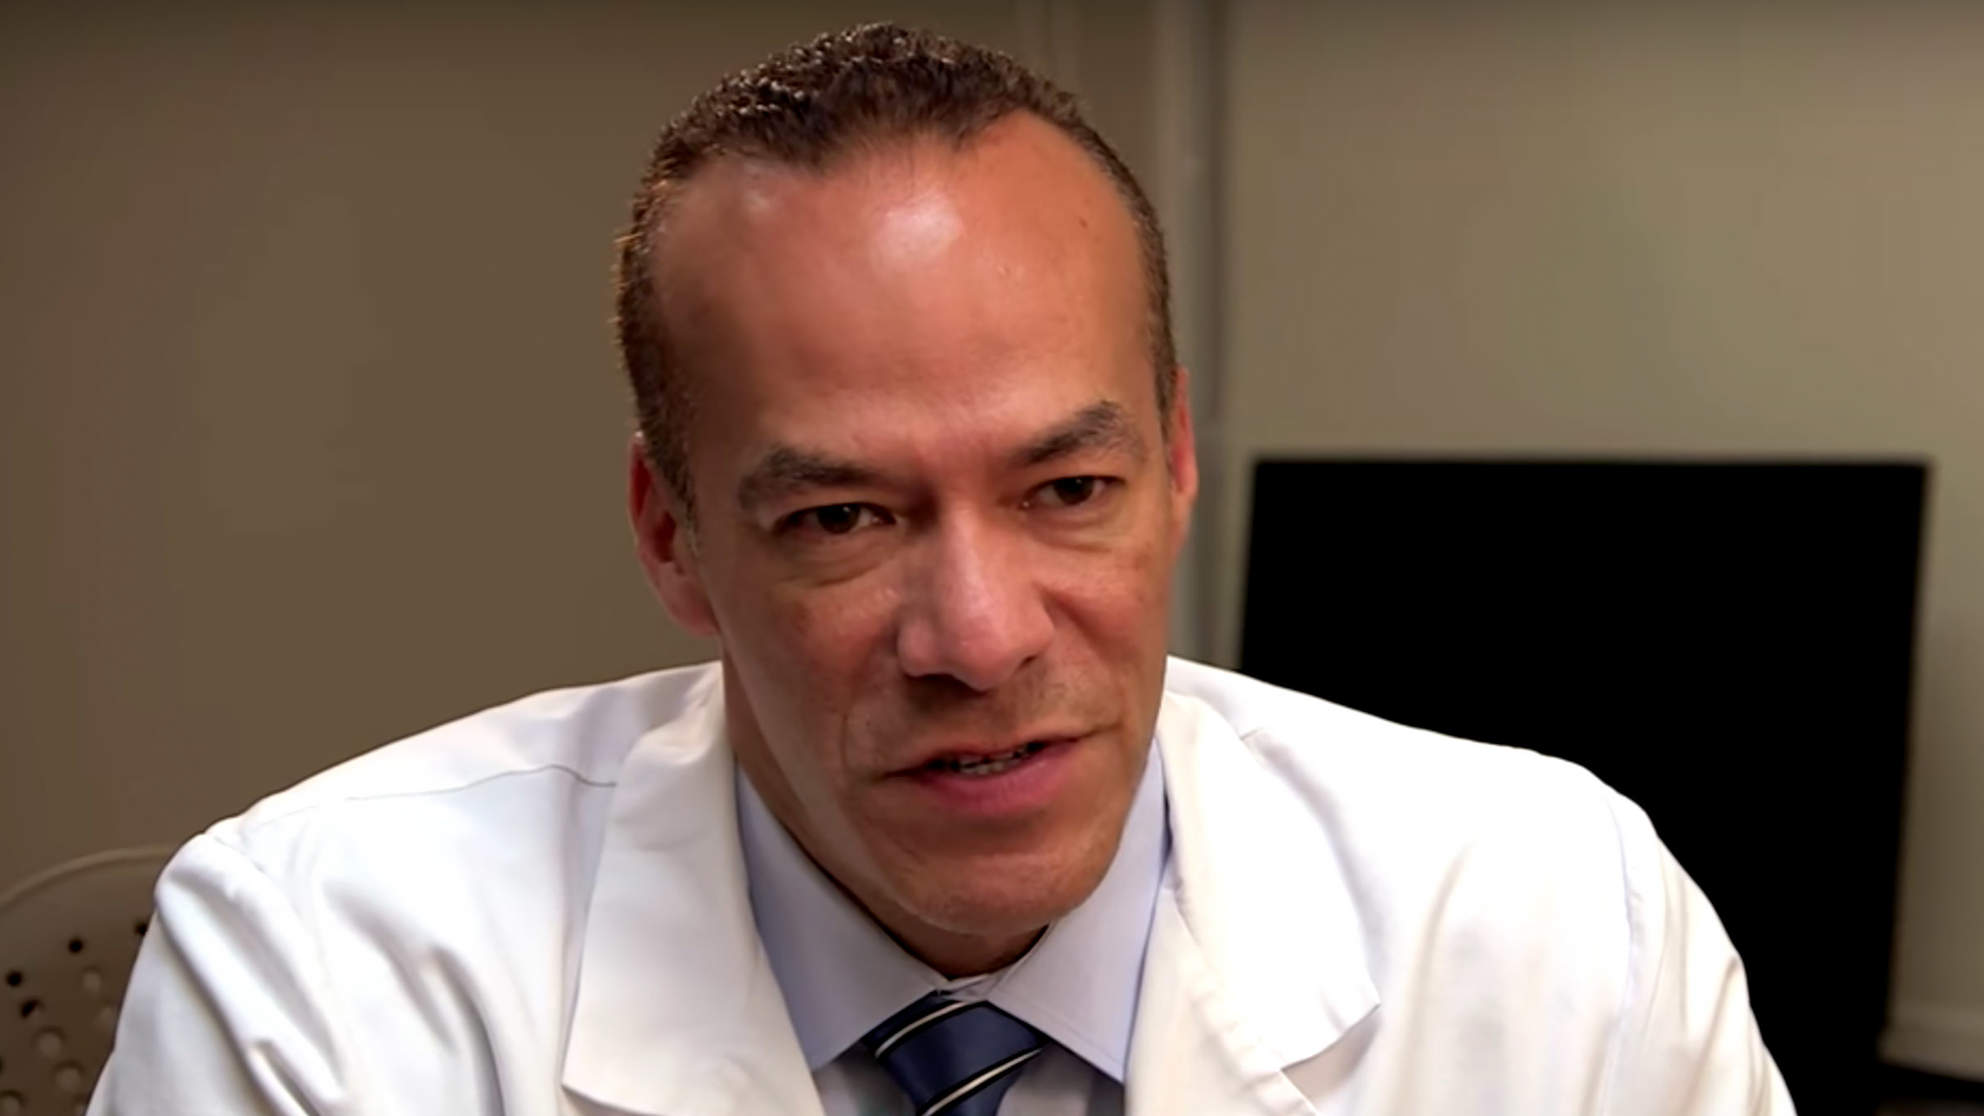 Surgeon from I Am Jazz Fired After Posting Photos of Trans Patients' Genitals on Instagram